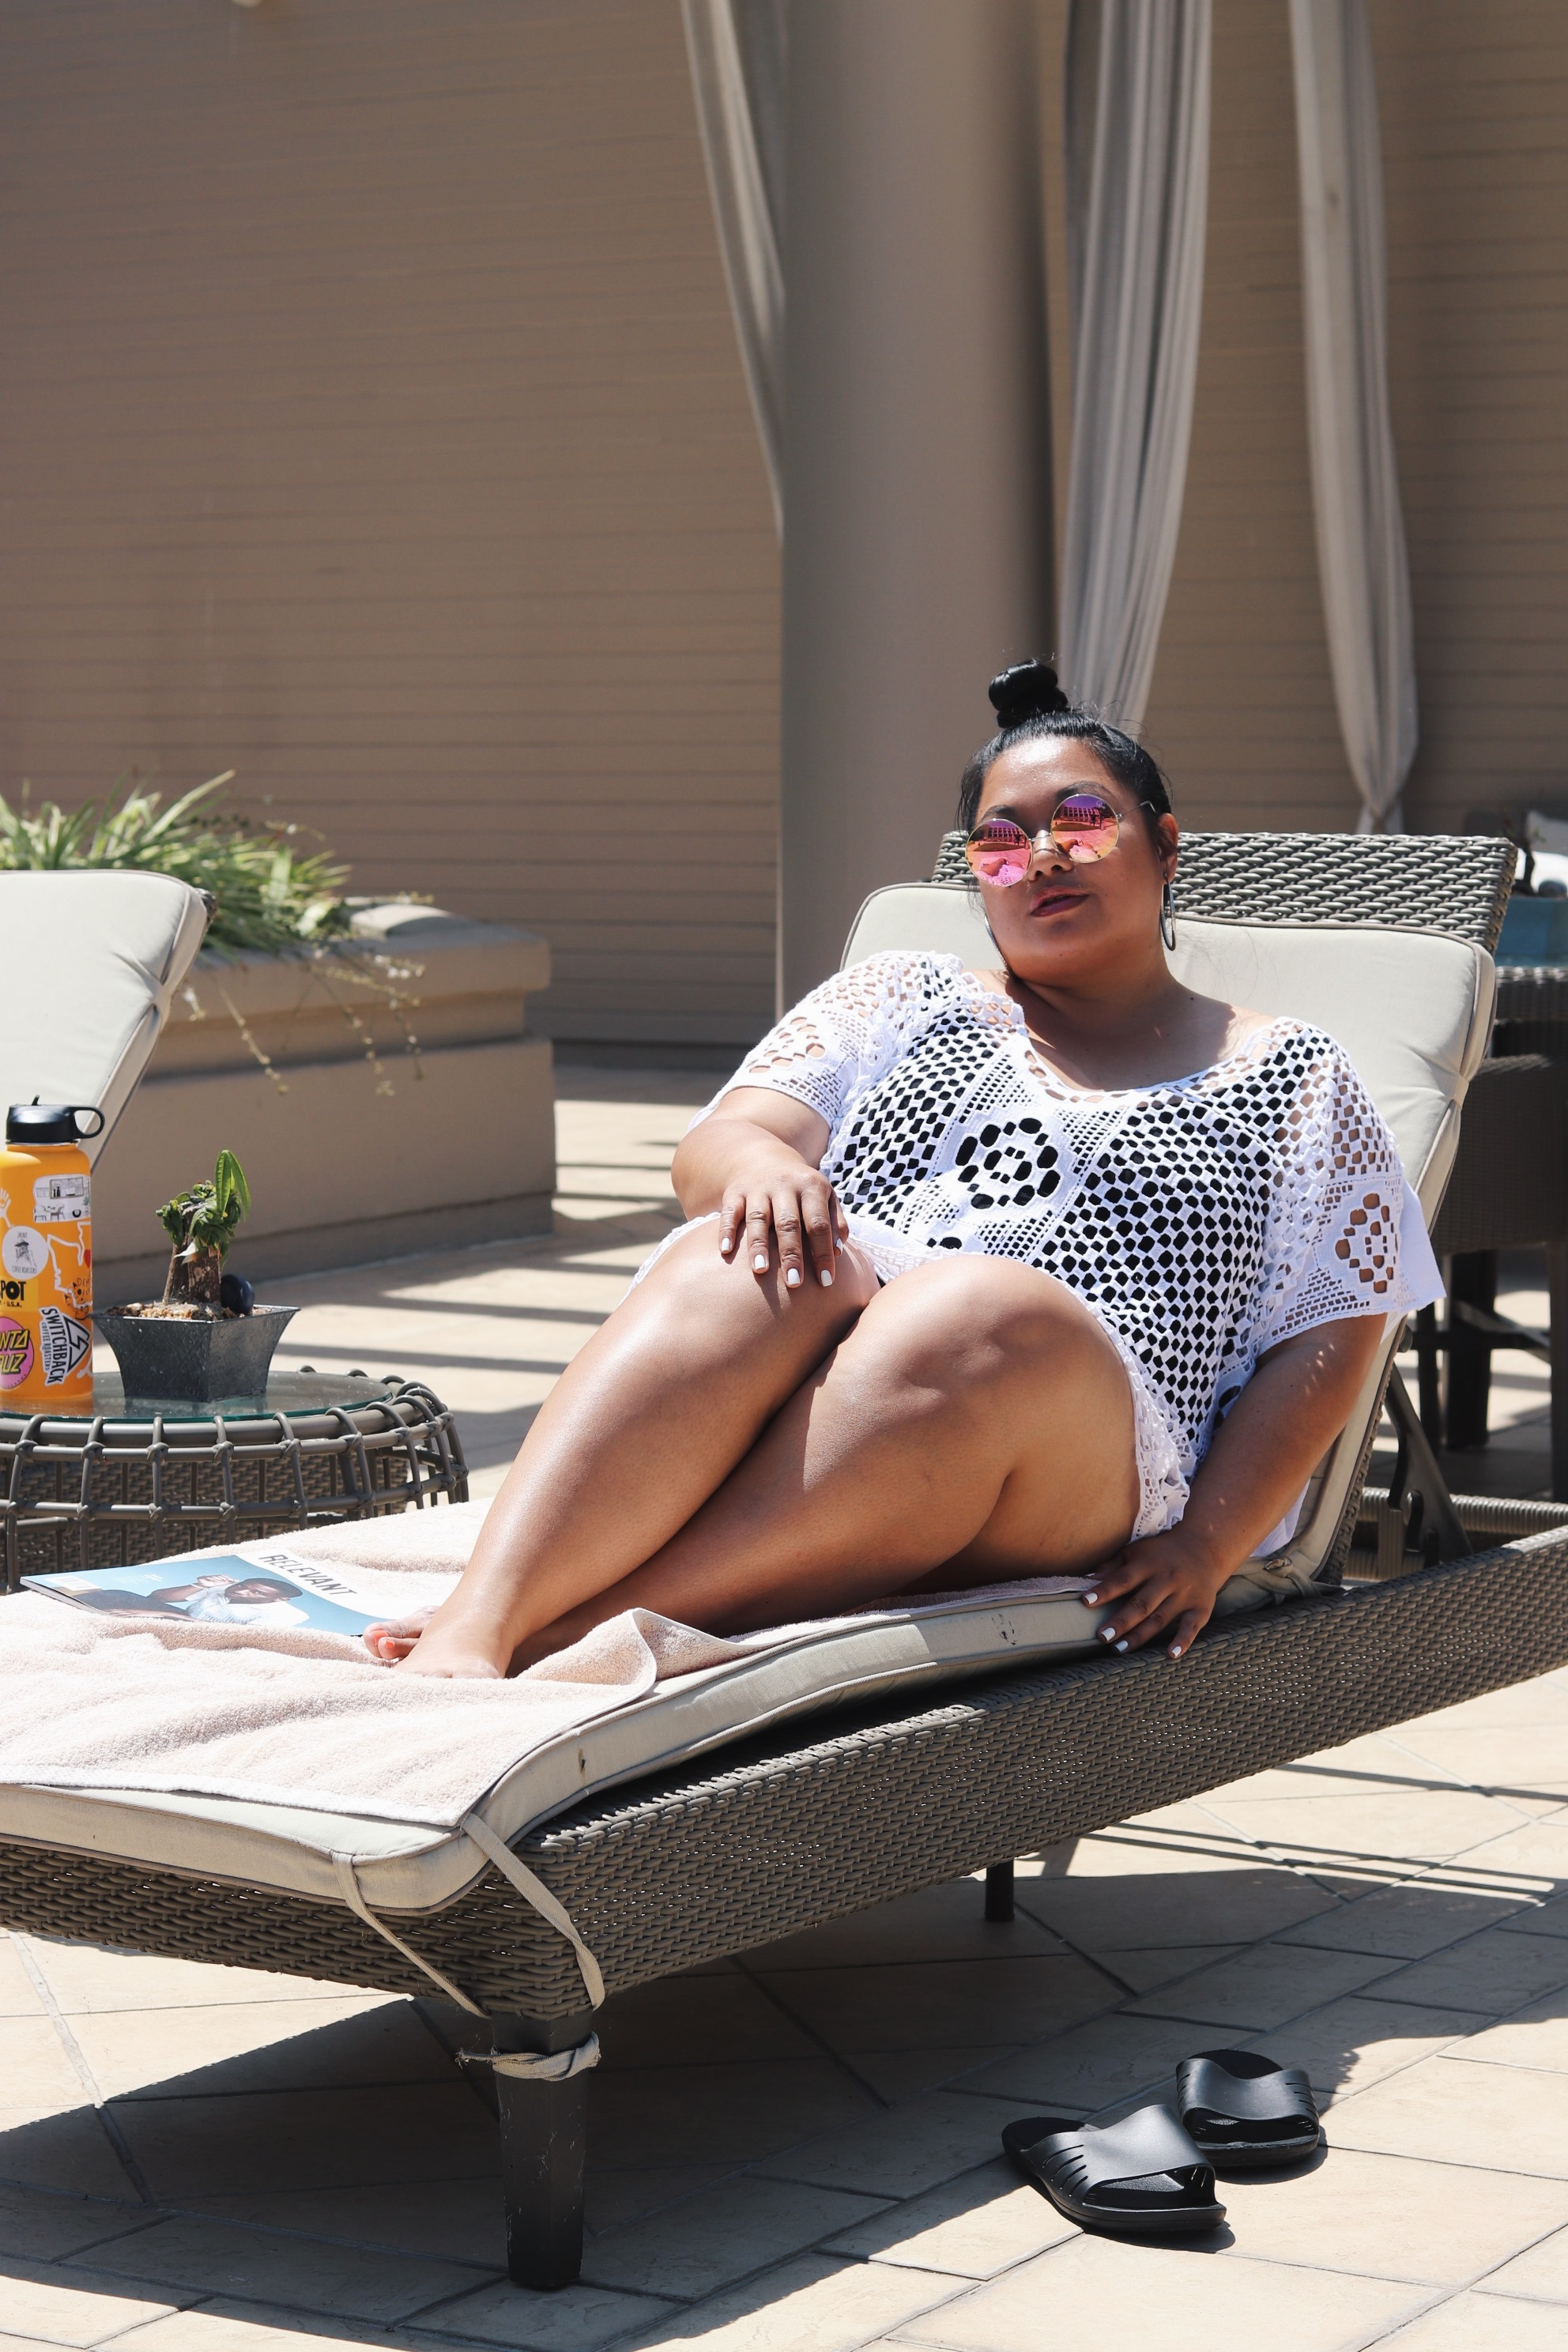 Harper - Carefully designed lace and oversized comfort, the Harper's cooling cotton is now my all-time staple for San Diego's warmer months. I threw this on over my simple black swimsuit and jeans and I was on my way to the spa looking Summer-chic and ready to unwind.Jeans are obviously unnecessary for lounging, so it was easy to stash them away in the Spa's locker room.Spa slippers and sunnies was all I had to add to this lounge outffit and I was ready to detach and indulge under the sun and catch up on my favorite magazines.